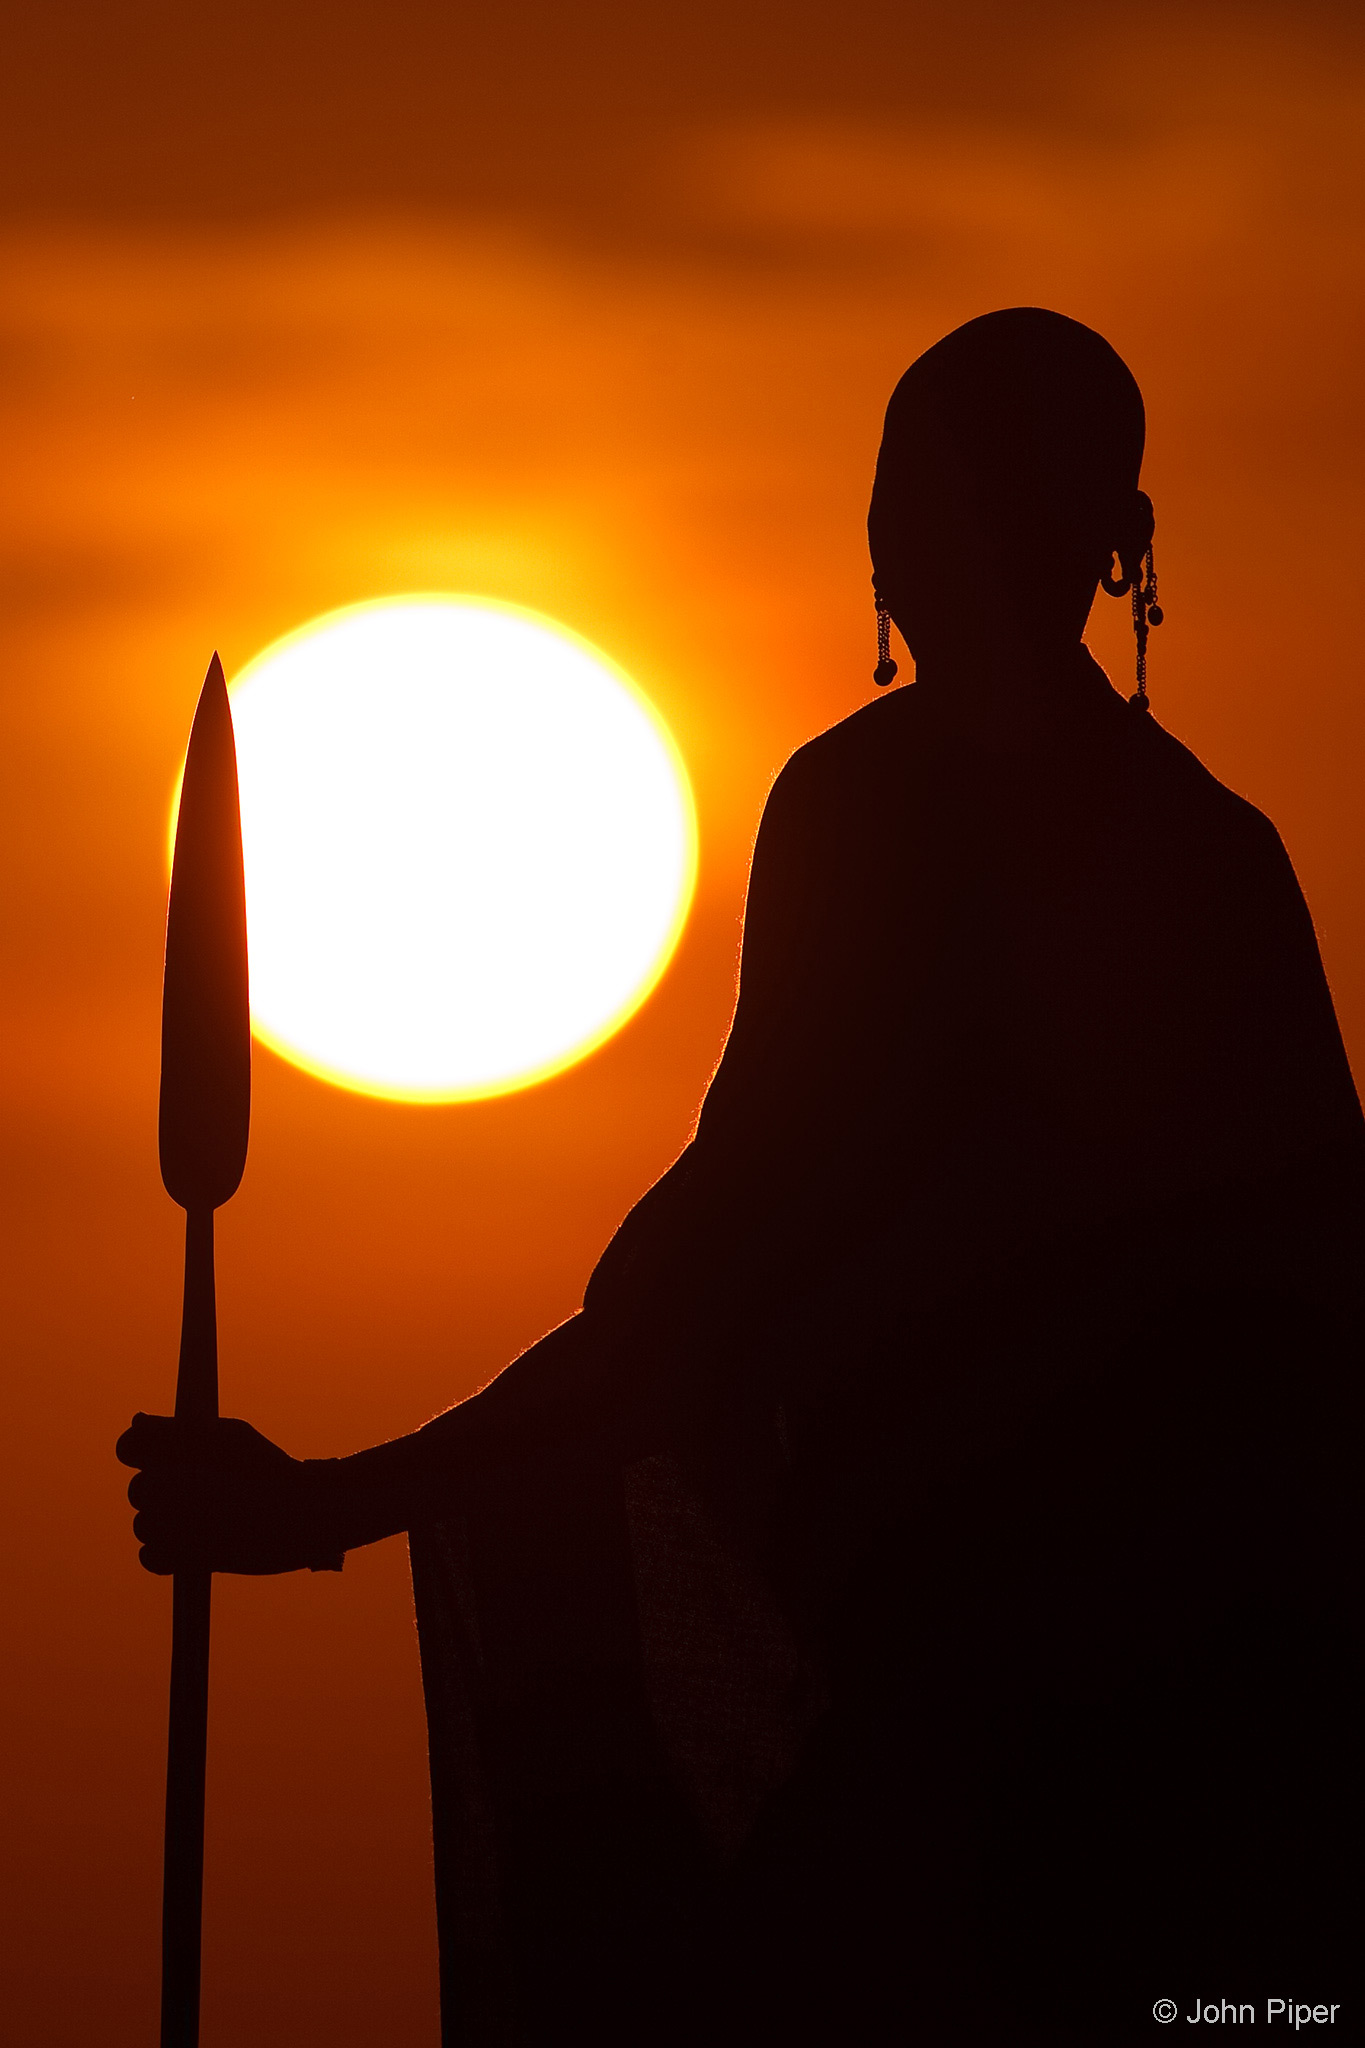 A Maasai tribesman in traditional dress, armed with his spear, looks towards the rising sun. Mara North Conservancy, Kenya © John Piper